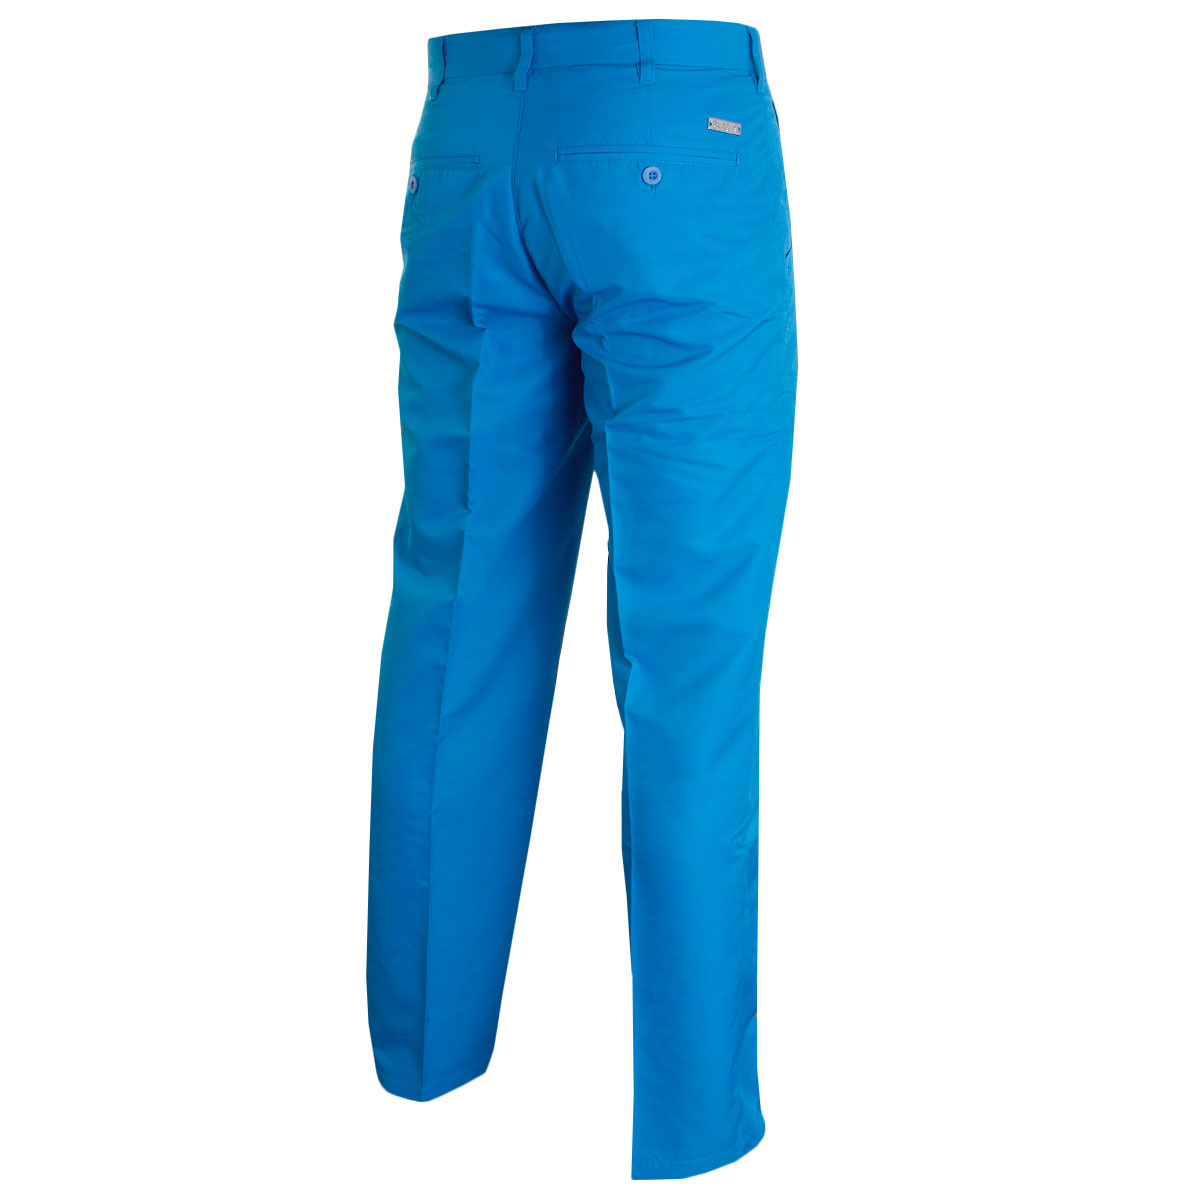 Island-Green-Mens-Tour-Golf-Trousers-Performance-Pant-57-OFF-RRP thumbnail 9